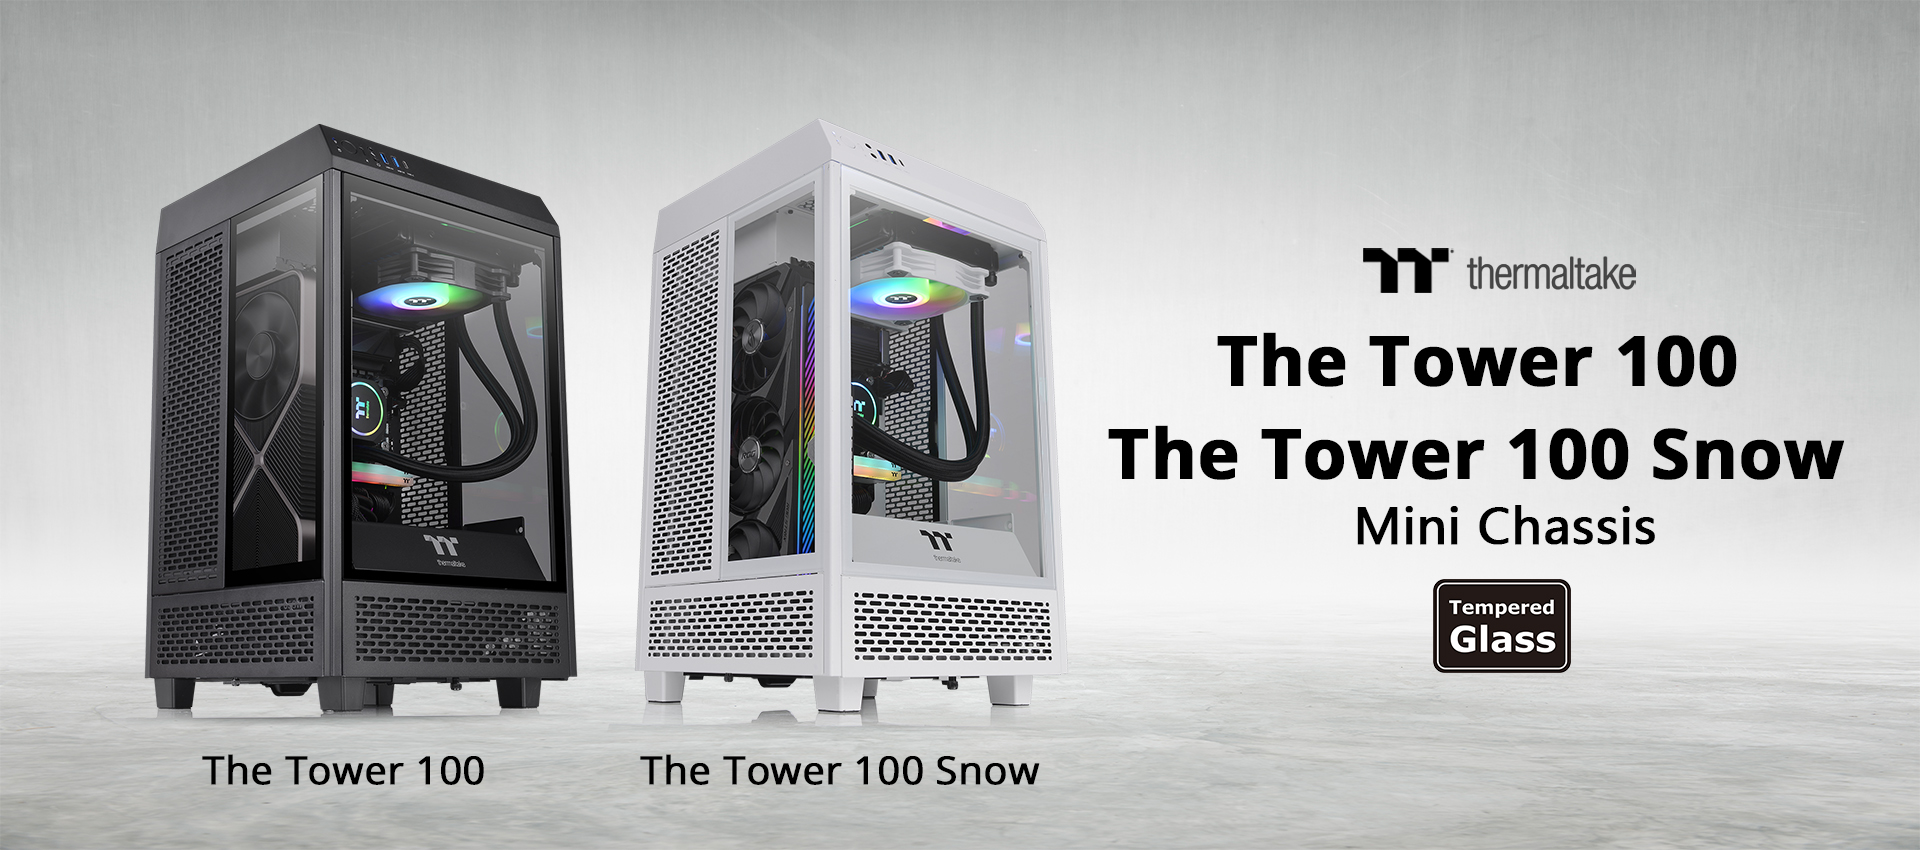 The Tower 100 PR